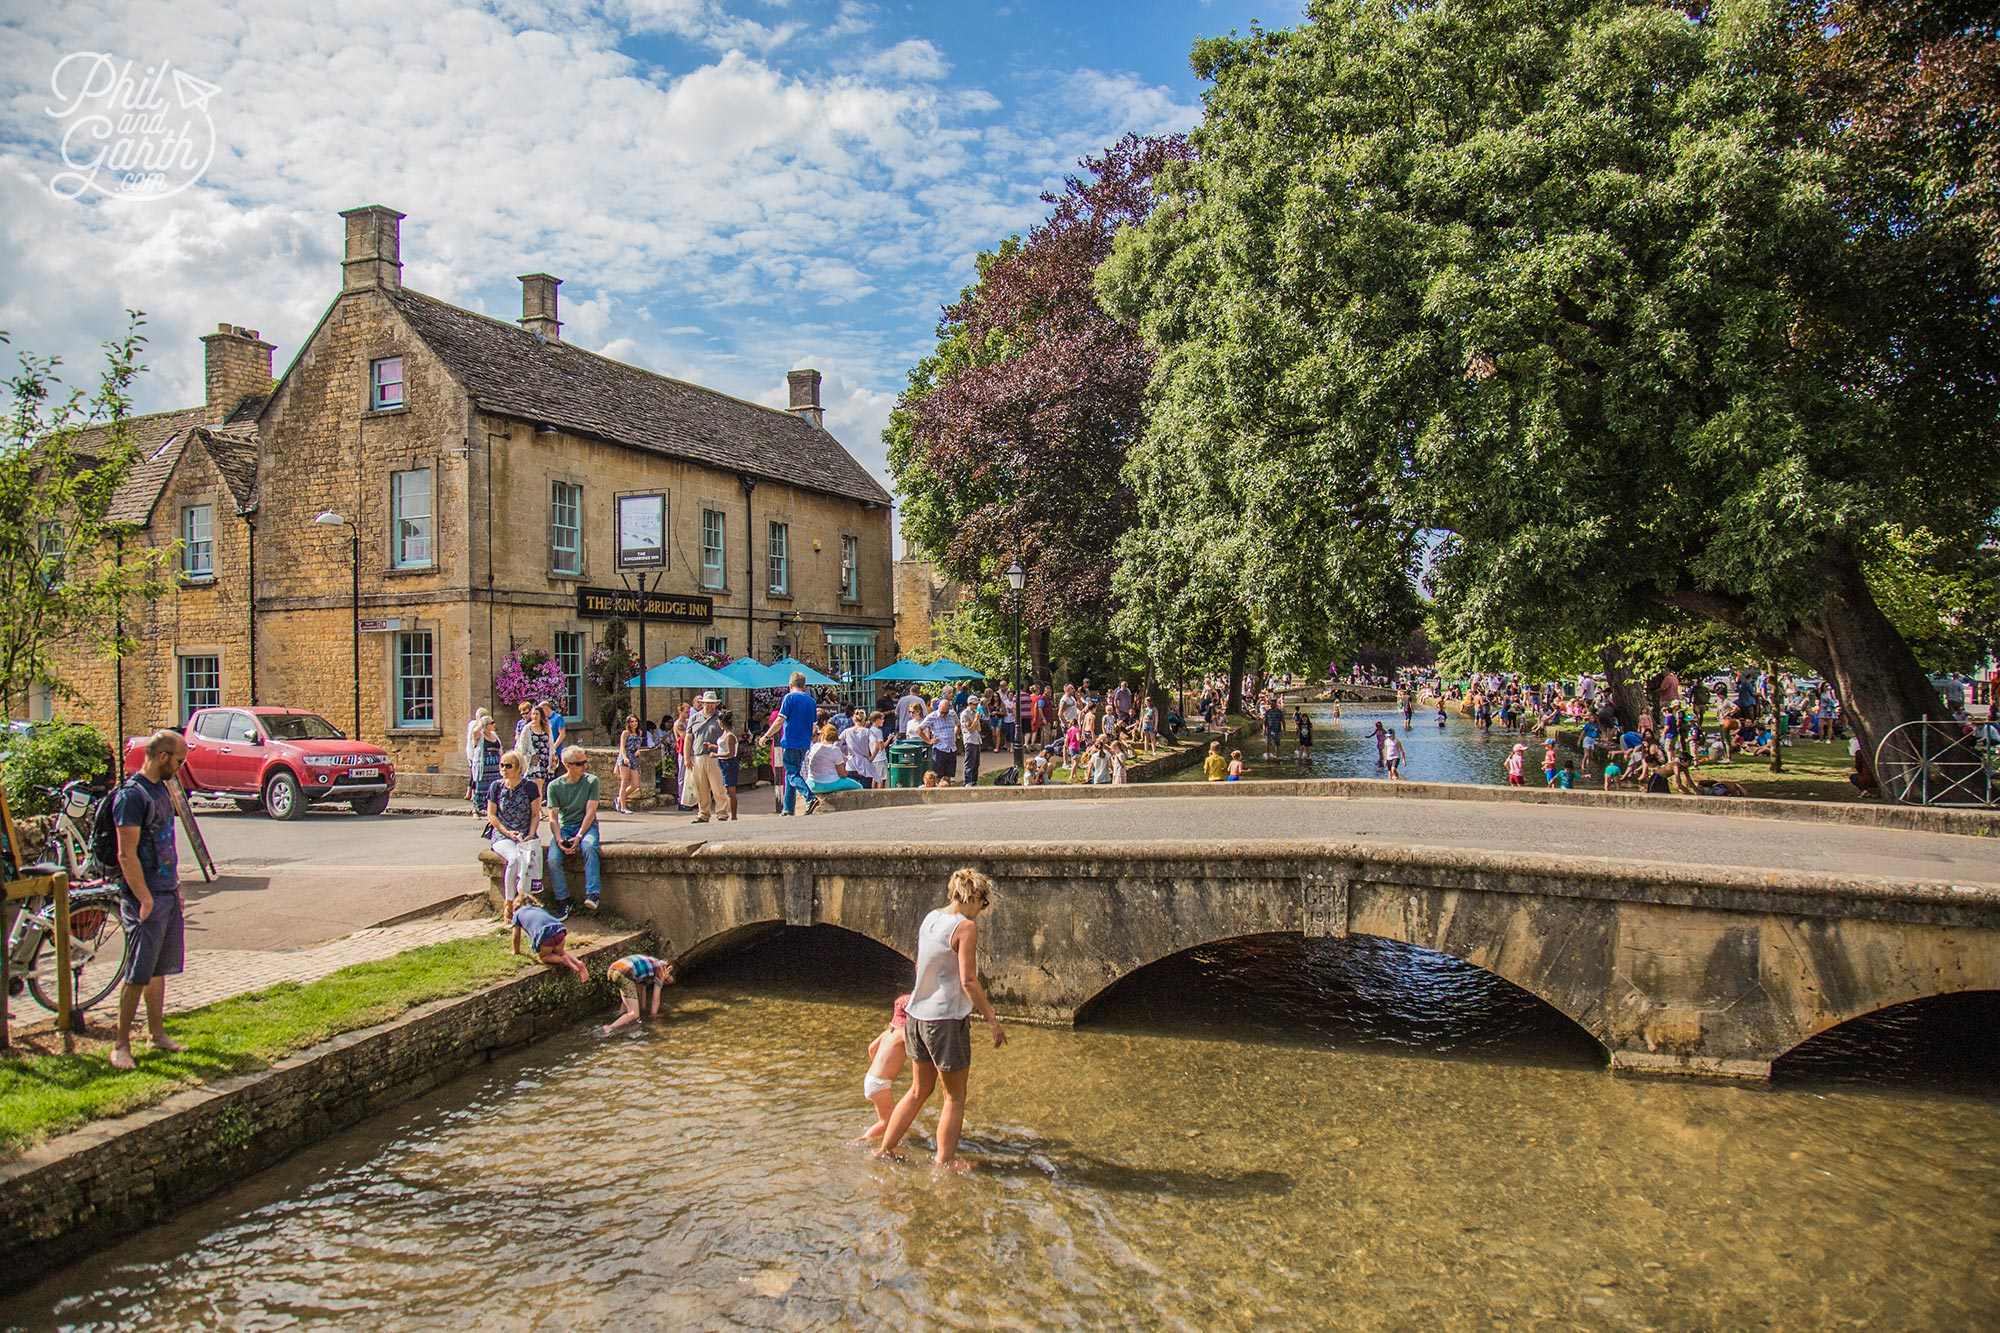 Signature low bridges of Bourton-on-the-Water